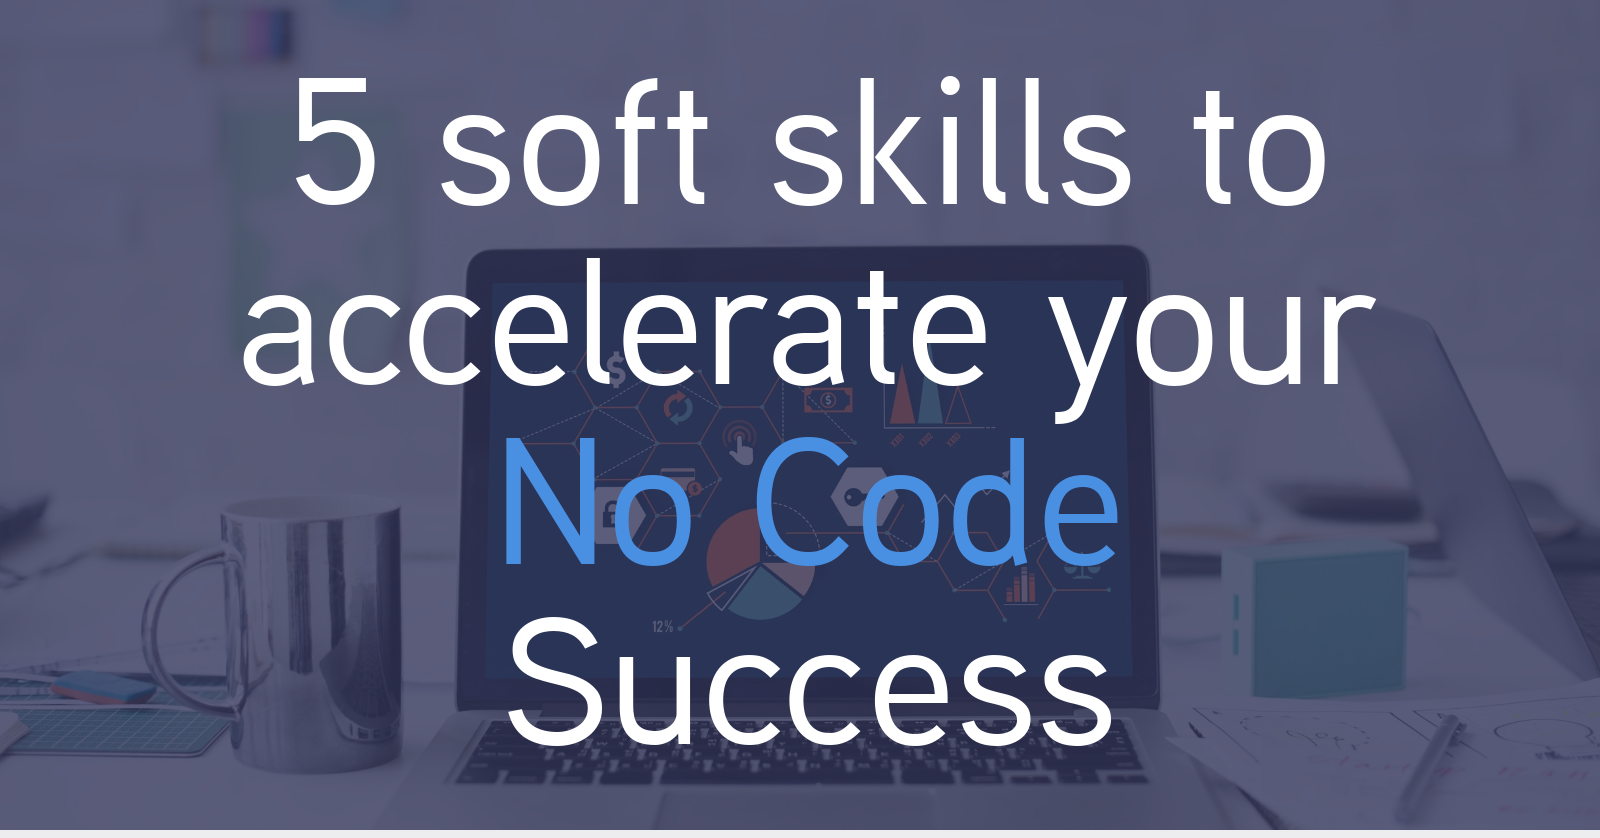 5 soft skills to accelerate your No Code success